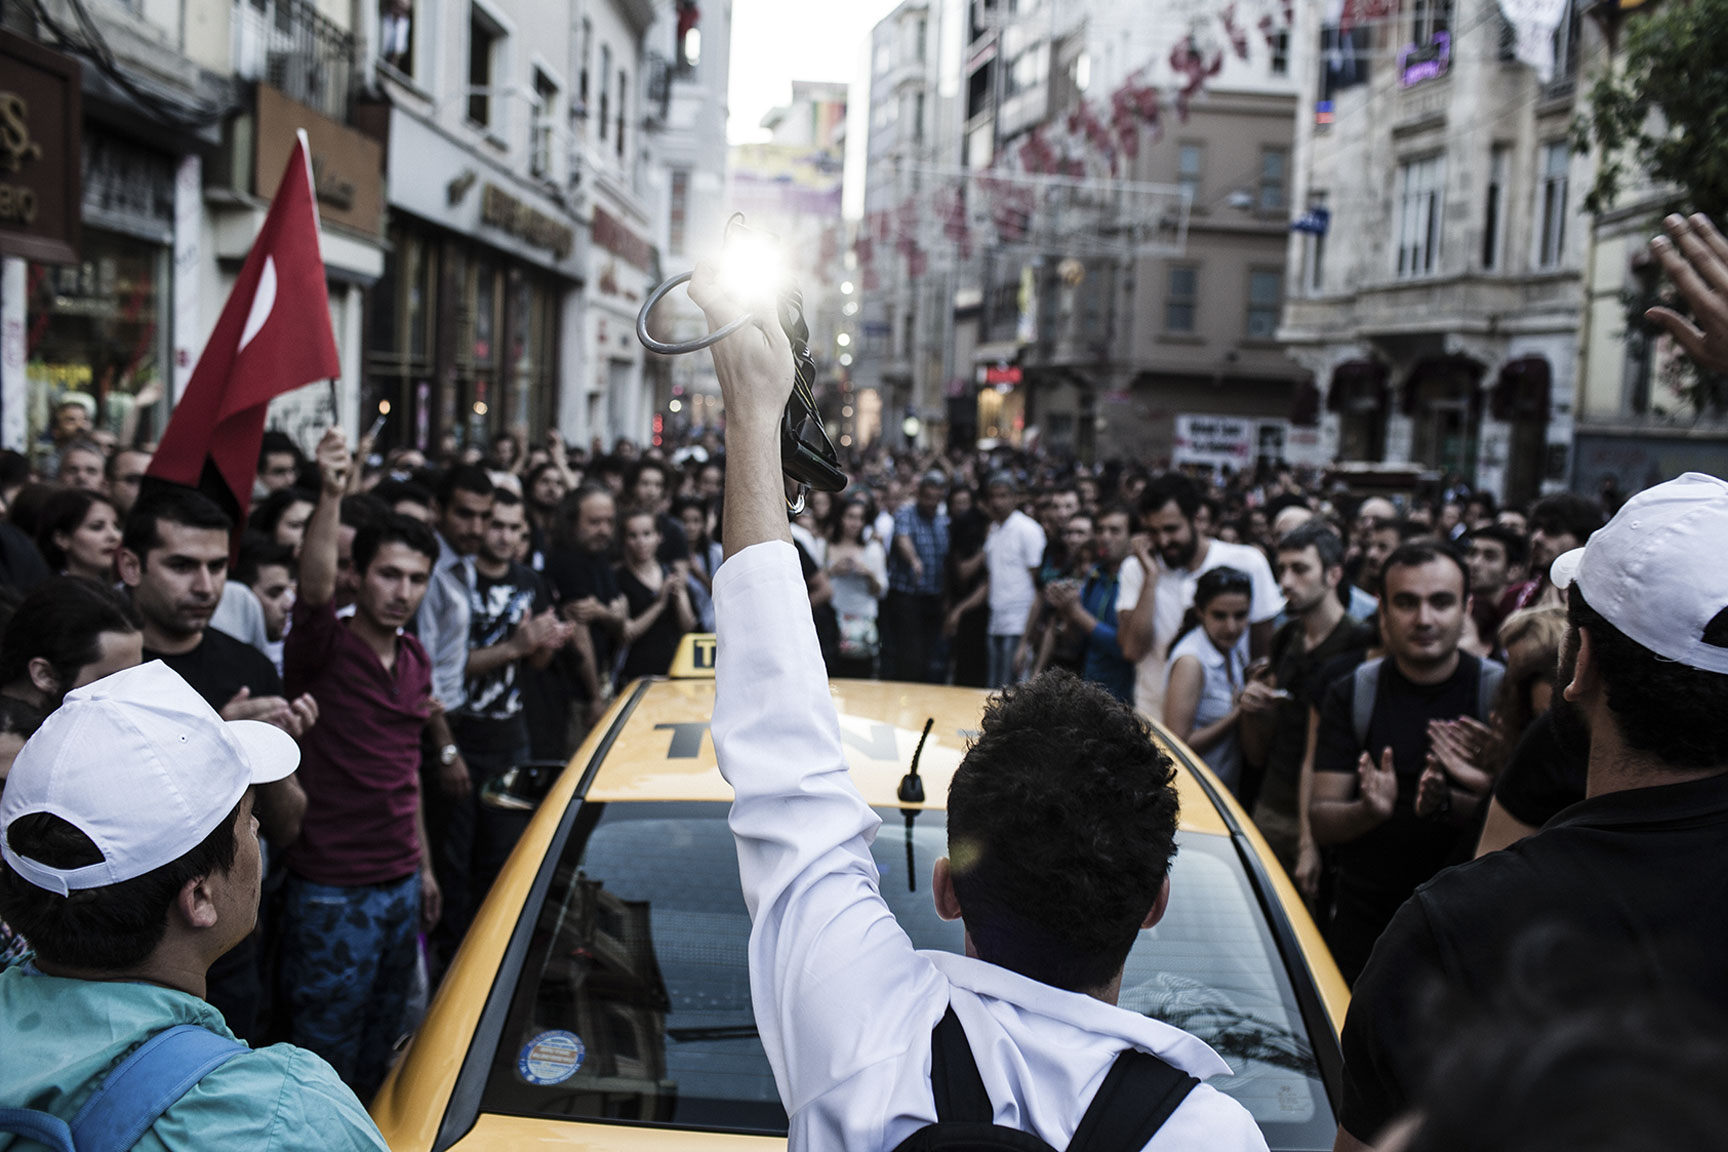 TURKEY_ISTANBUL_CLASHES_DOCTORS_20130604_4263.jpg